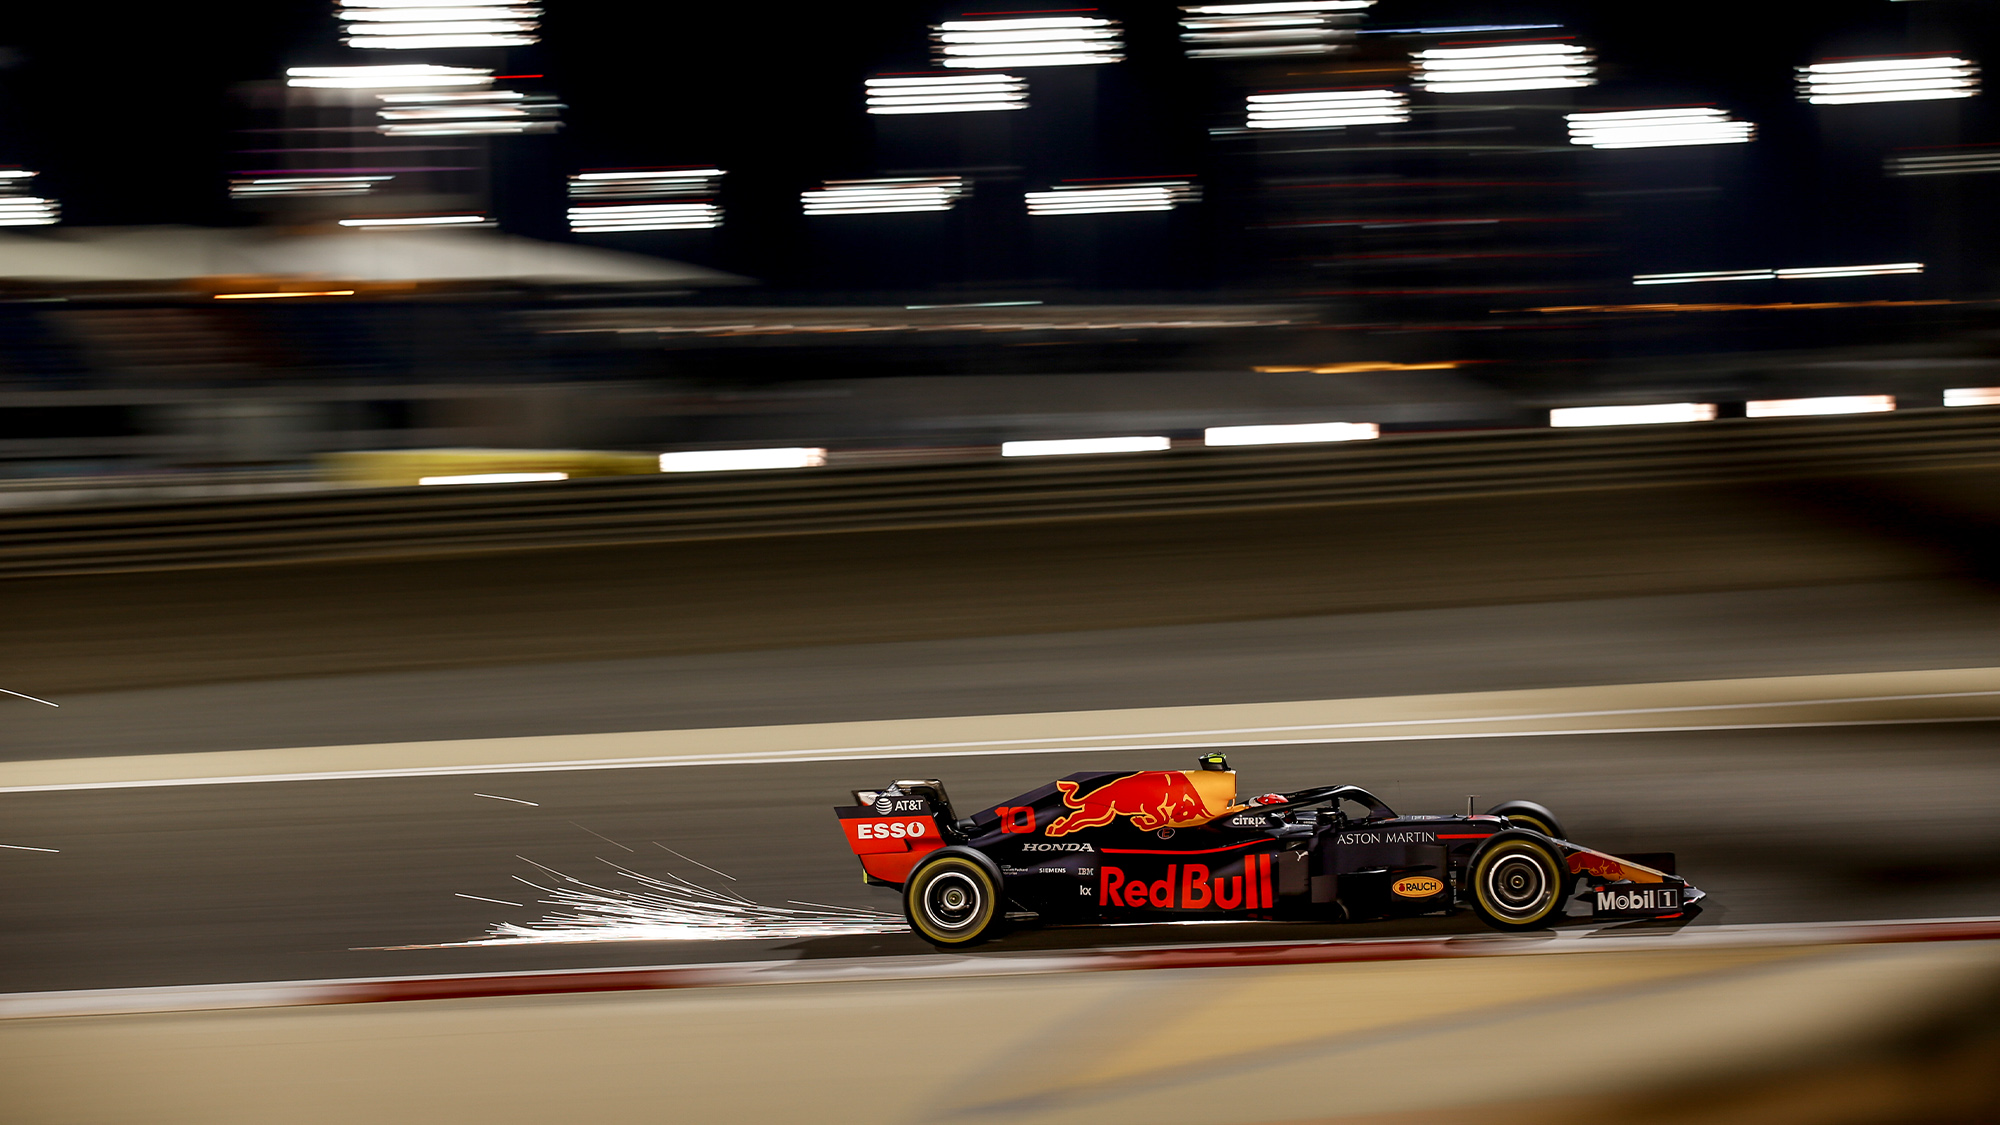 Pierre Gasly's Red Bull sends up a shower of sparks during the 2019 F1 Bahrain Grand Prix